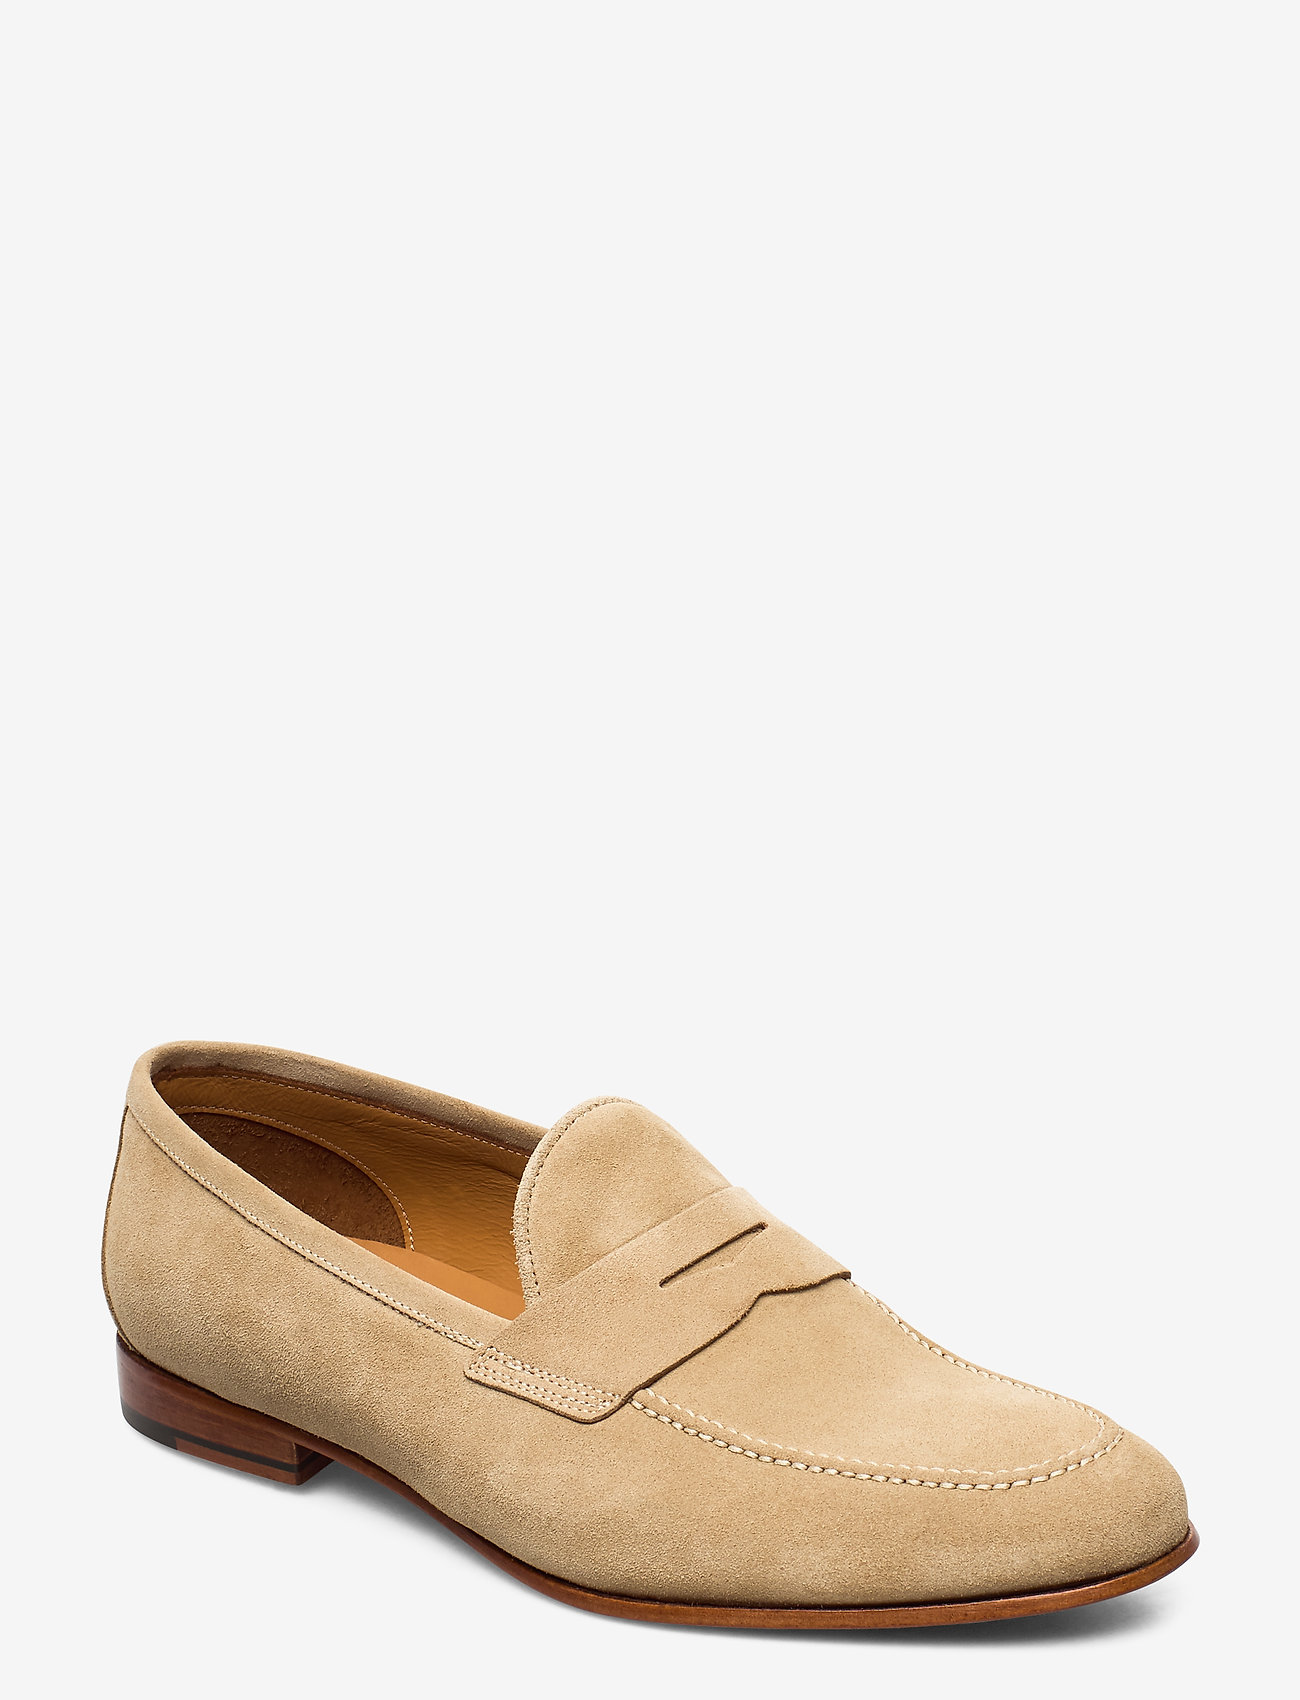 SAND - Footwear MW - F359 - loafers - light camel - 0